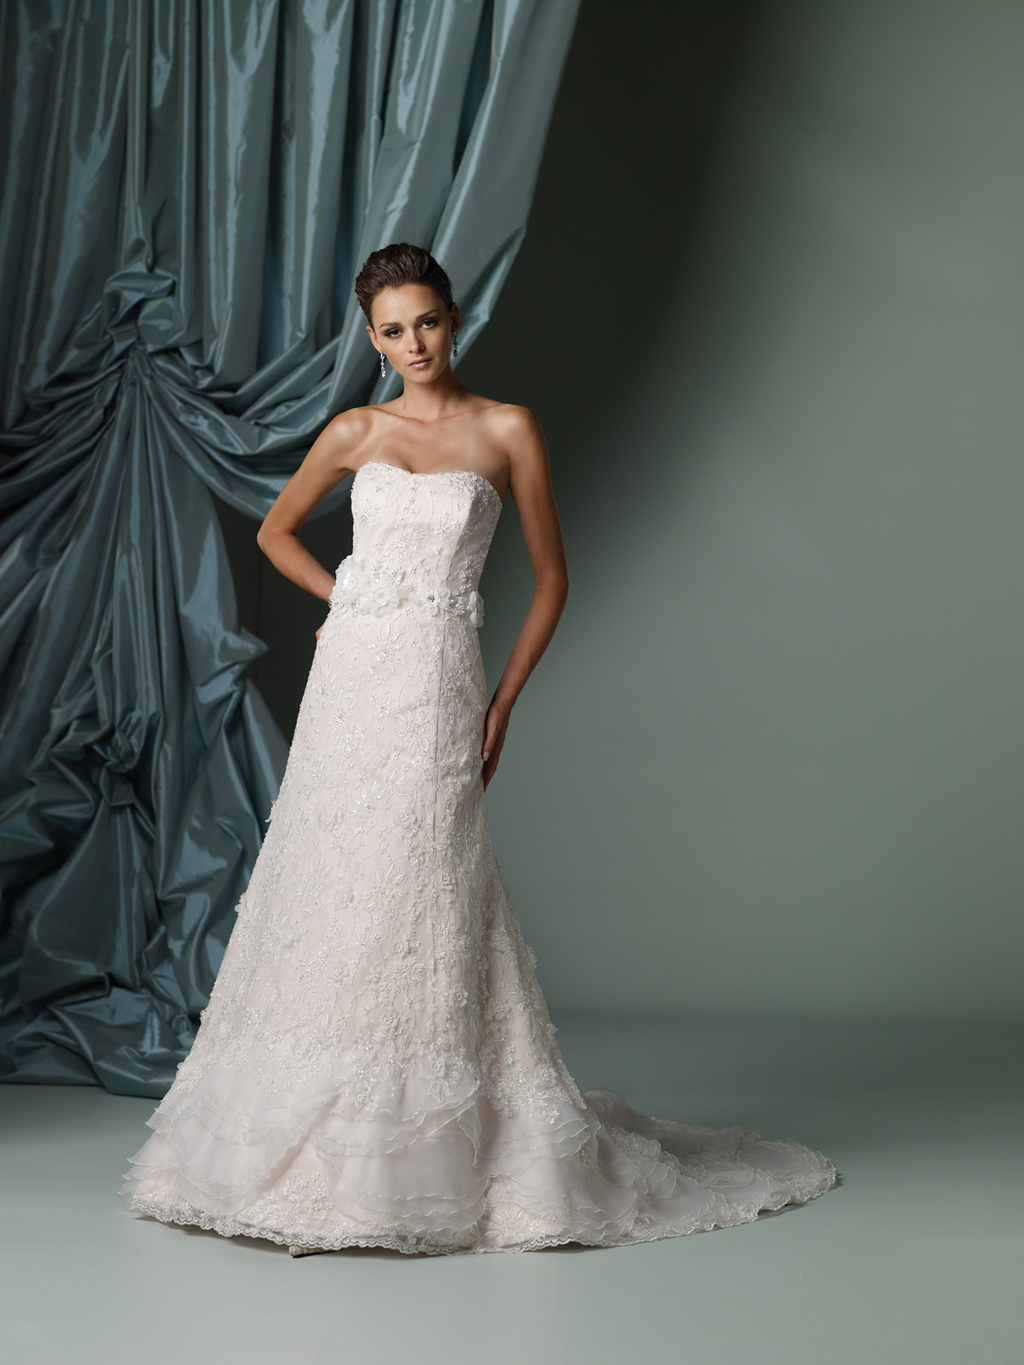 2012 wedding dress james clifford for mon cheri bridal gowns J11230